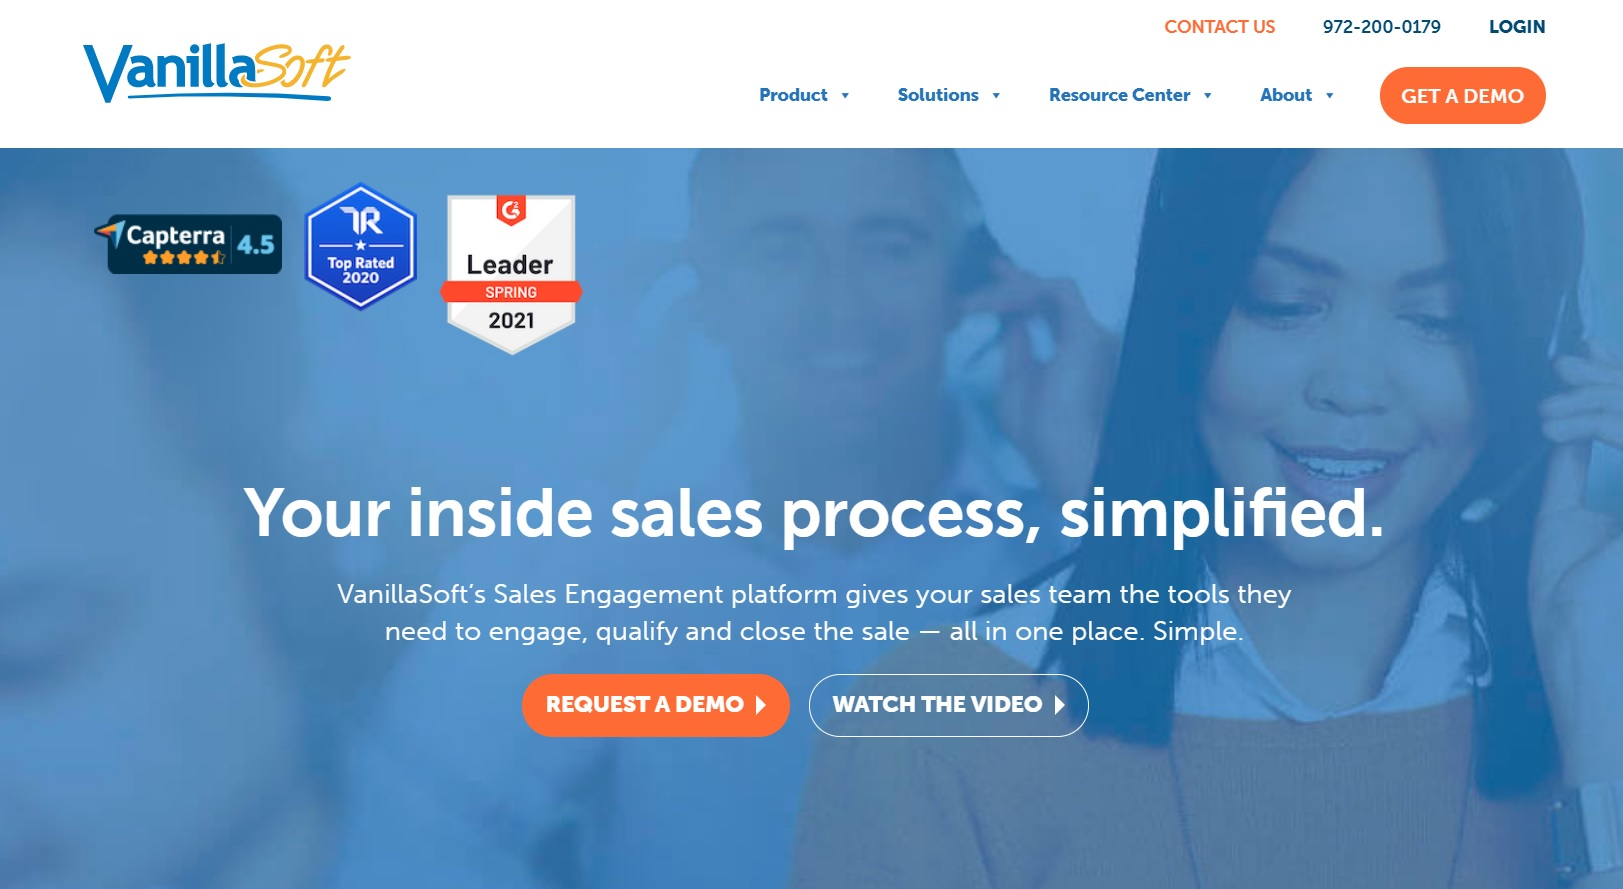 Landing page screenshot of VanillaSoft, one of the cold calling software mentioned in the article.